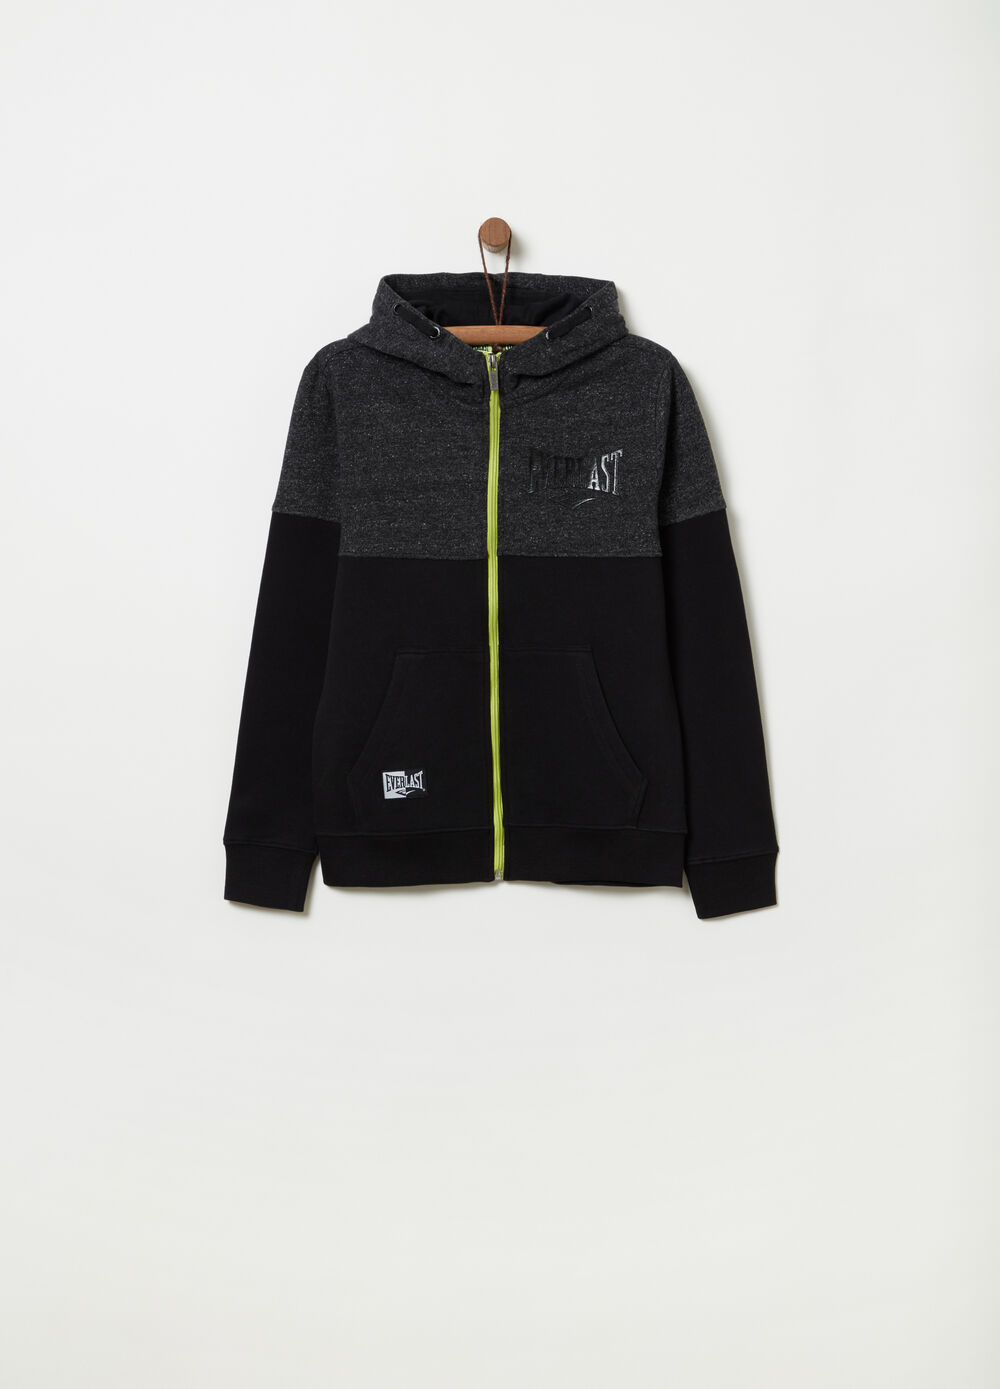 Colorblock sweatshirt with full-zip hood